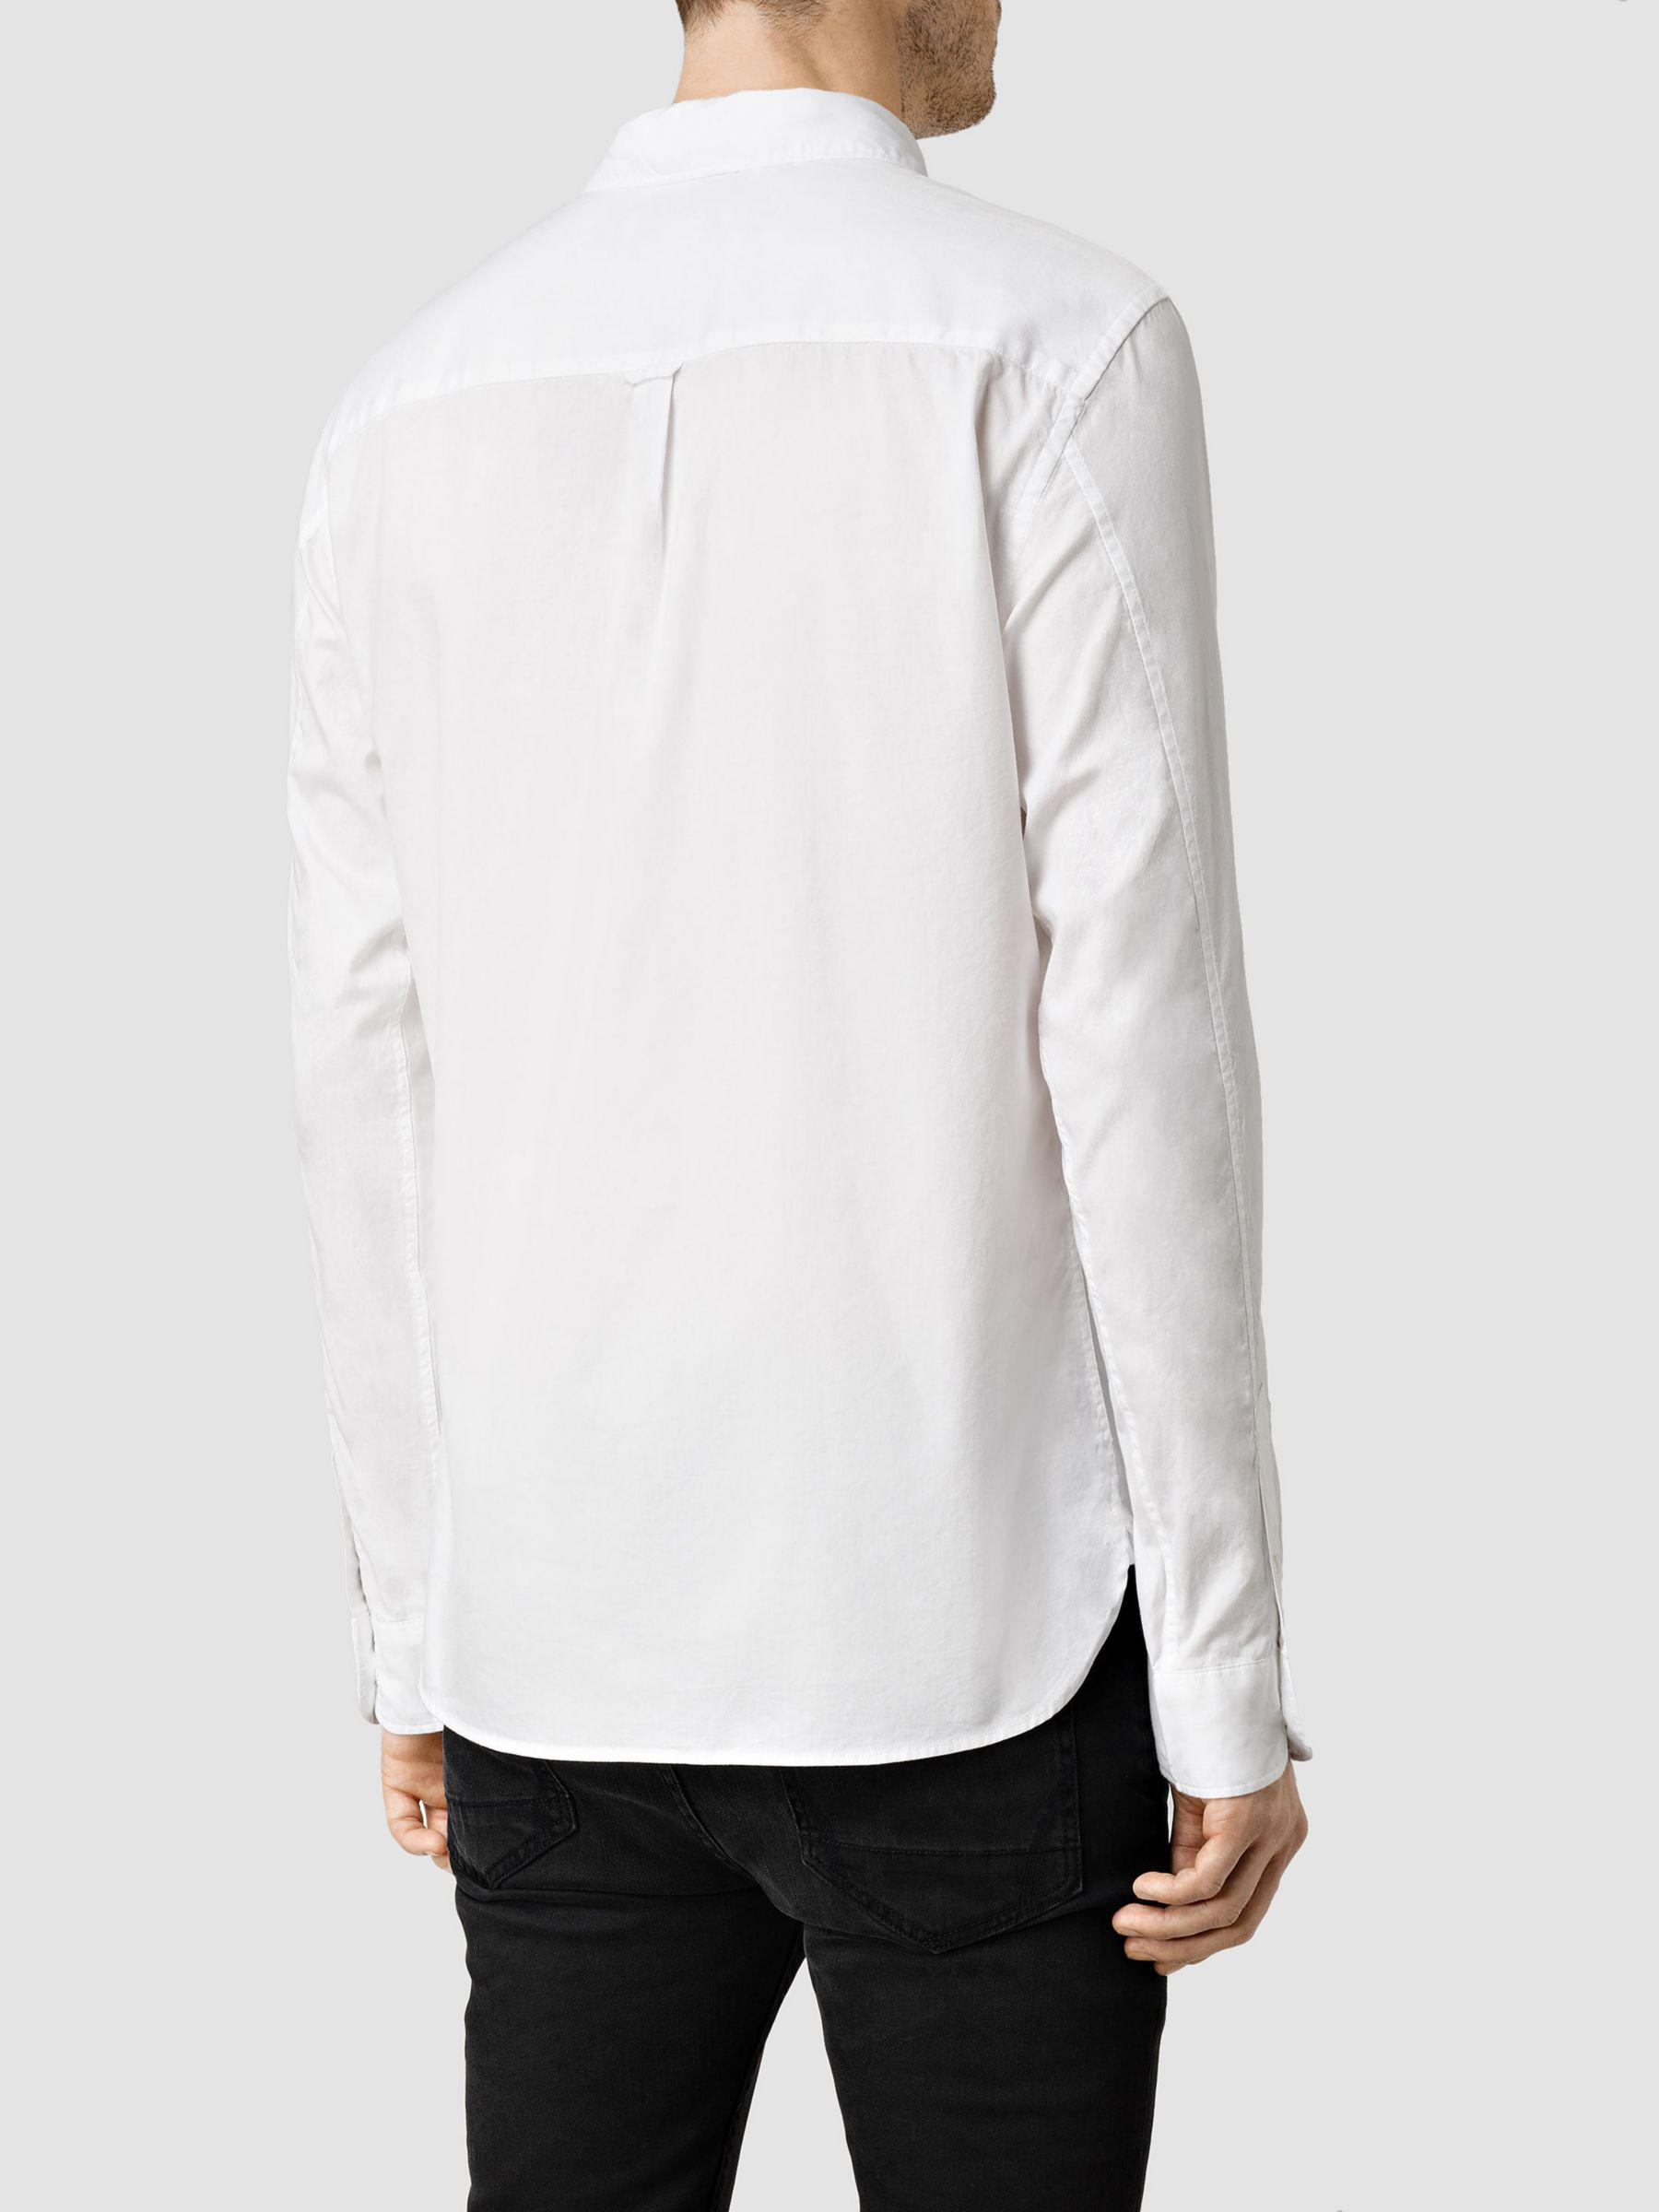 e49098bb All Saints Plain White Shirt – EDGE Engineering and Consulting Limited